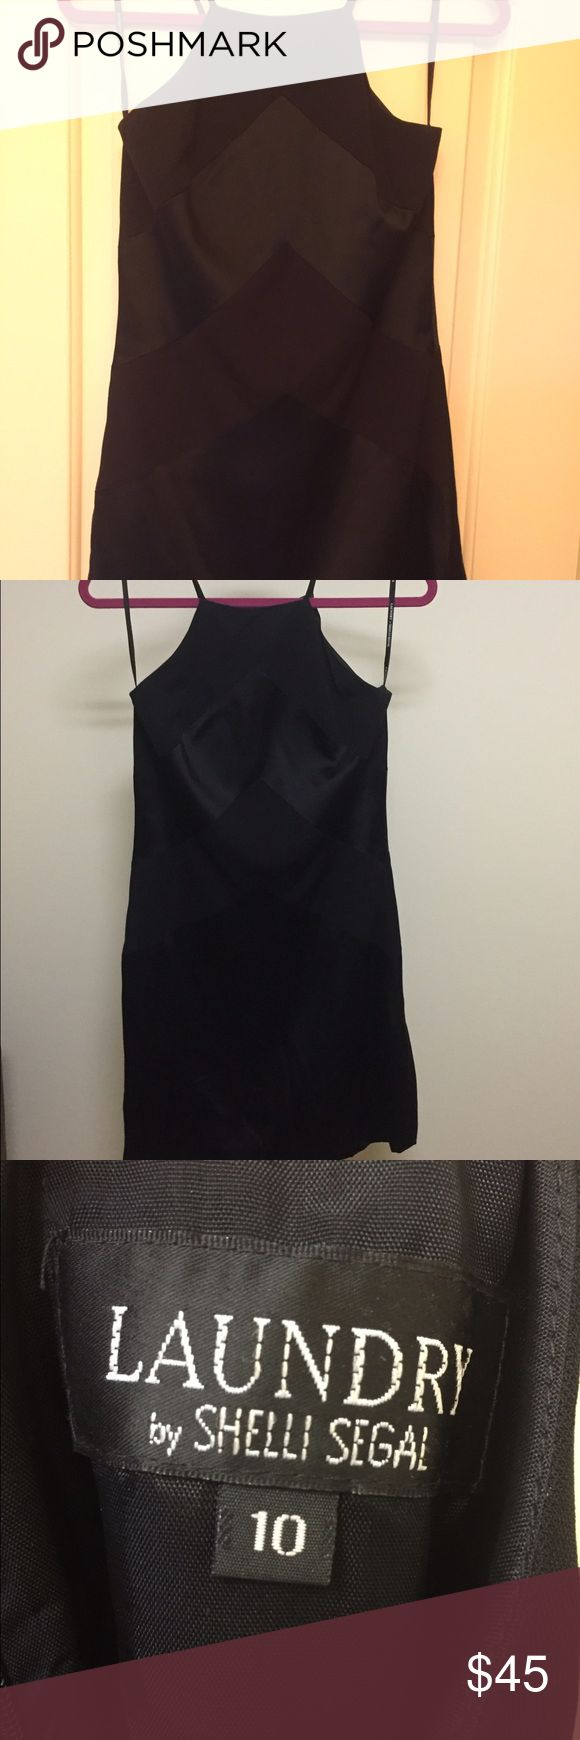 🎉SALE 🎉 Laundry LBD. Halter top w/satin design Very good cond. worn once but could use a good steaming. LAUNDRY Dress label is marked 10 but could probably fit a 8-10 or maybe a large 6. Black satin chevron type pattern. Laundry by Shelli Segal Dresses